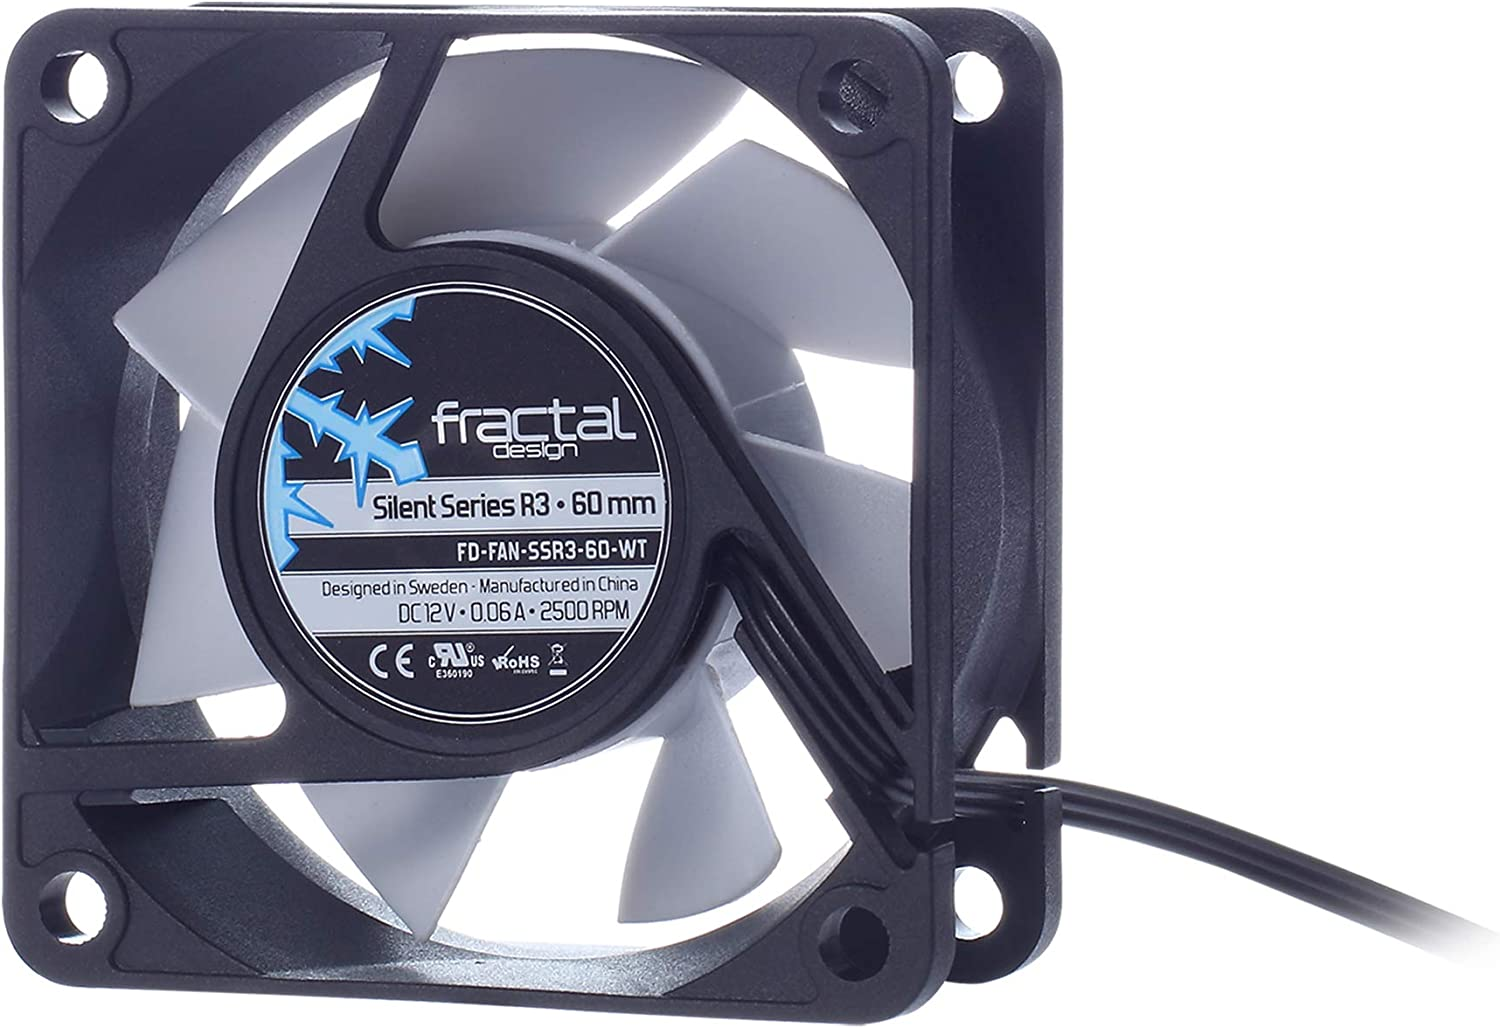 Fractal Design Silent Series R3 White - Silent Computer Fan - Optimized for Quiet Operation - 60 mm - Rotational Speed 2500 RPM - Black Ribbon Cable - Rifle Bearings - 12V - Black/White (Single)